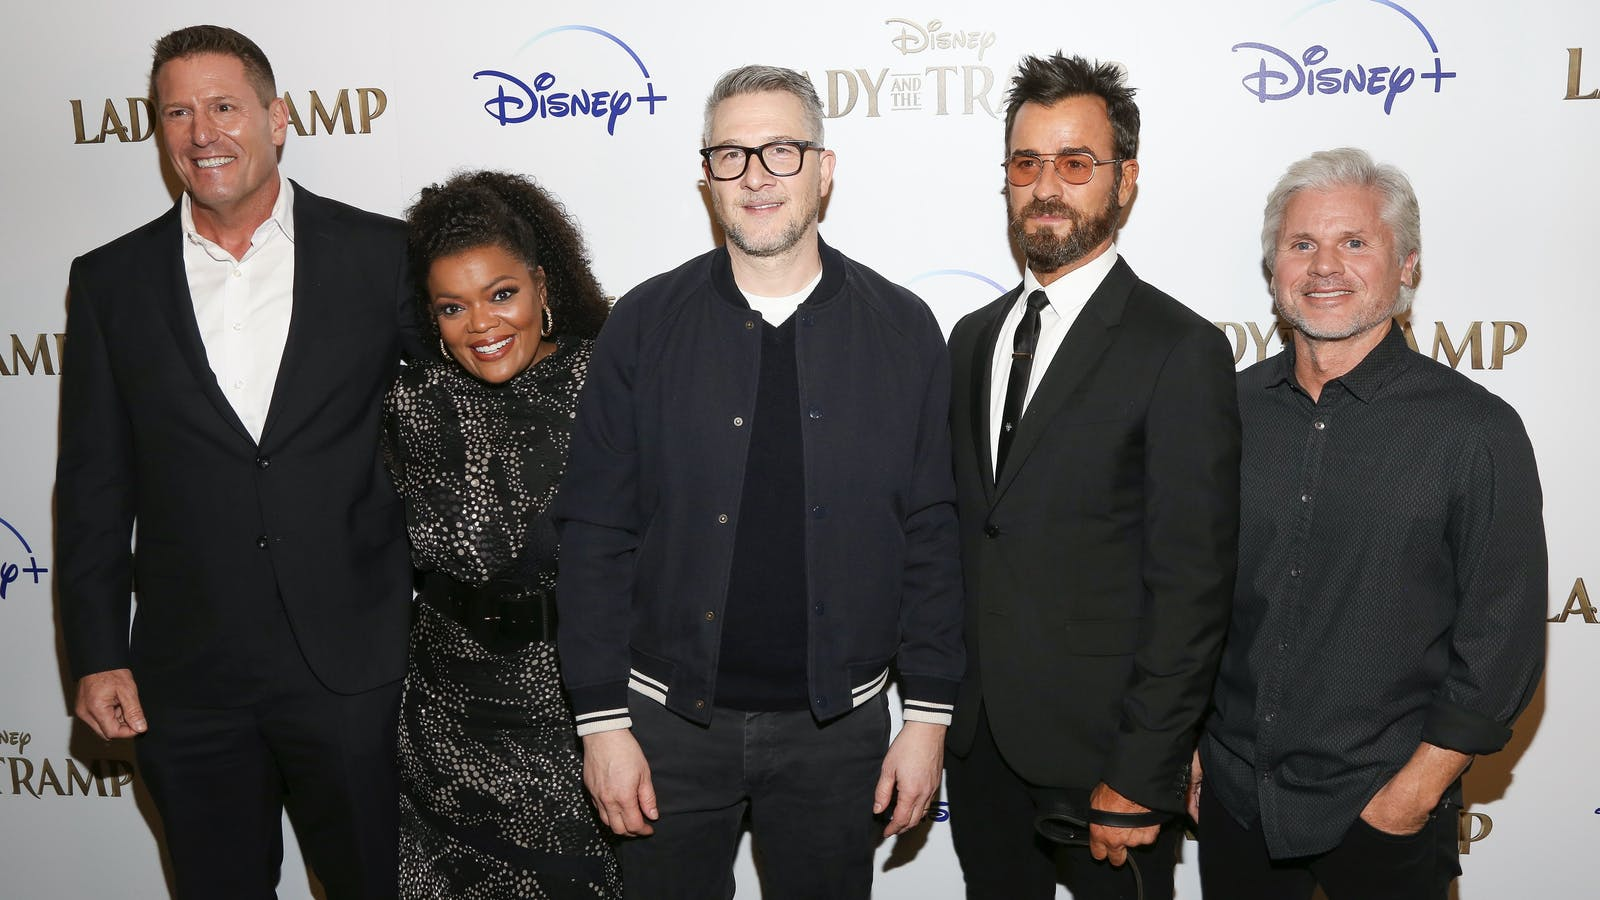 Disney's direct to consumer chief Kevin Mayer, far left, with the cast of Disney's 'Lady and the Tramp' at a screening sponsored by Disney Plus. Photo by AP